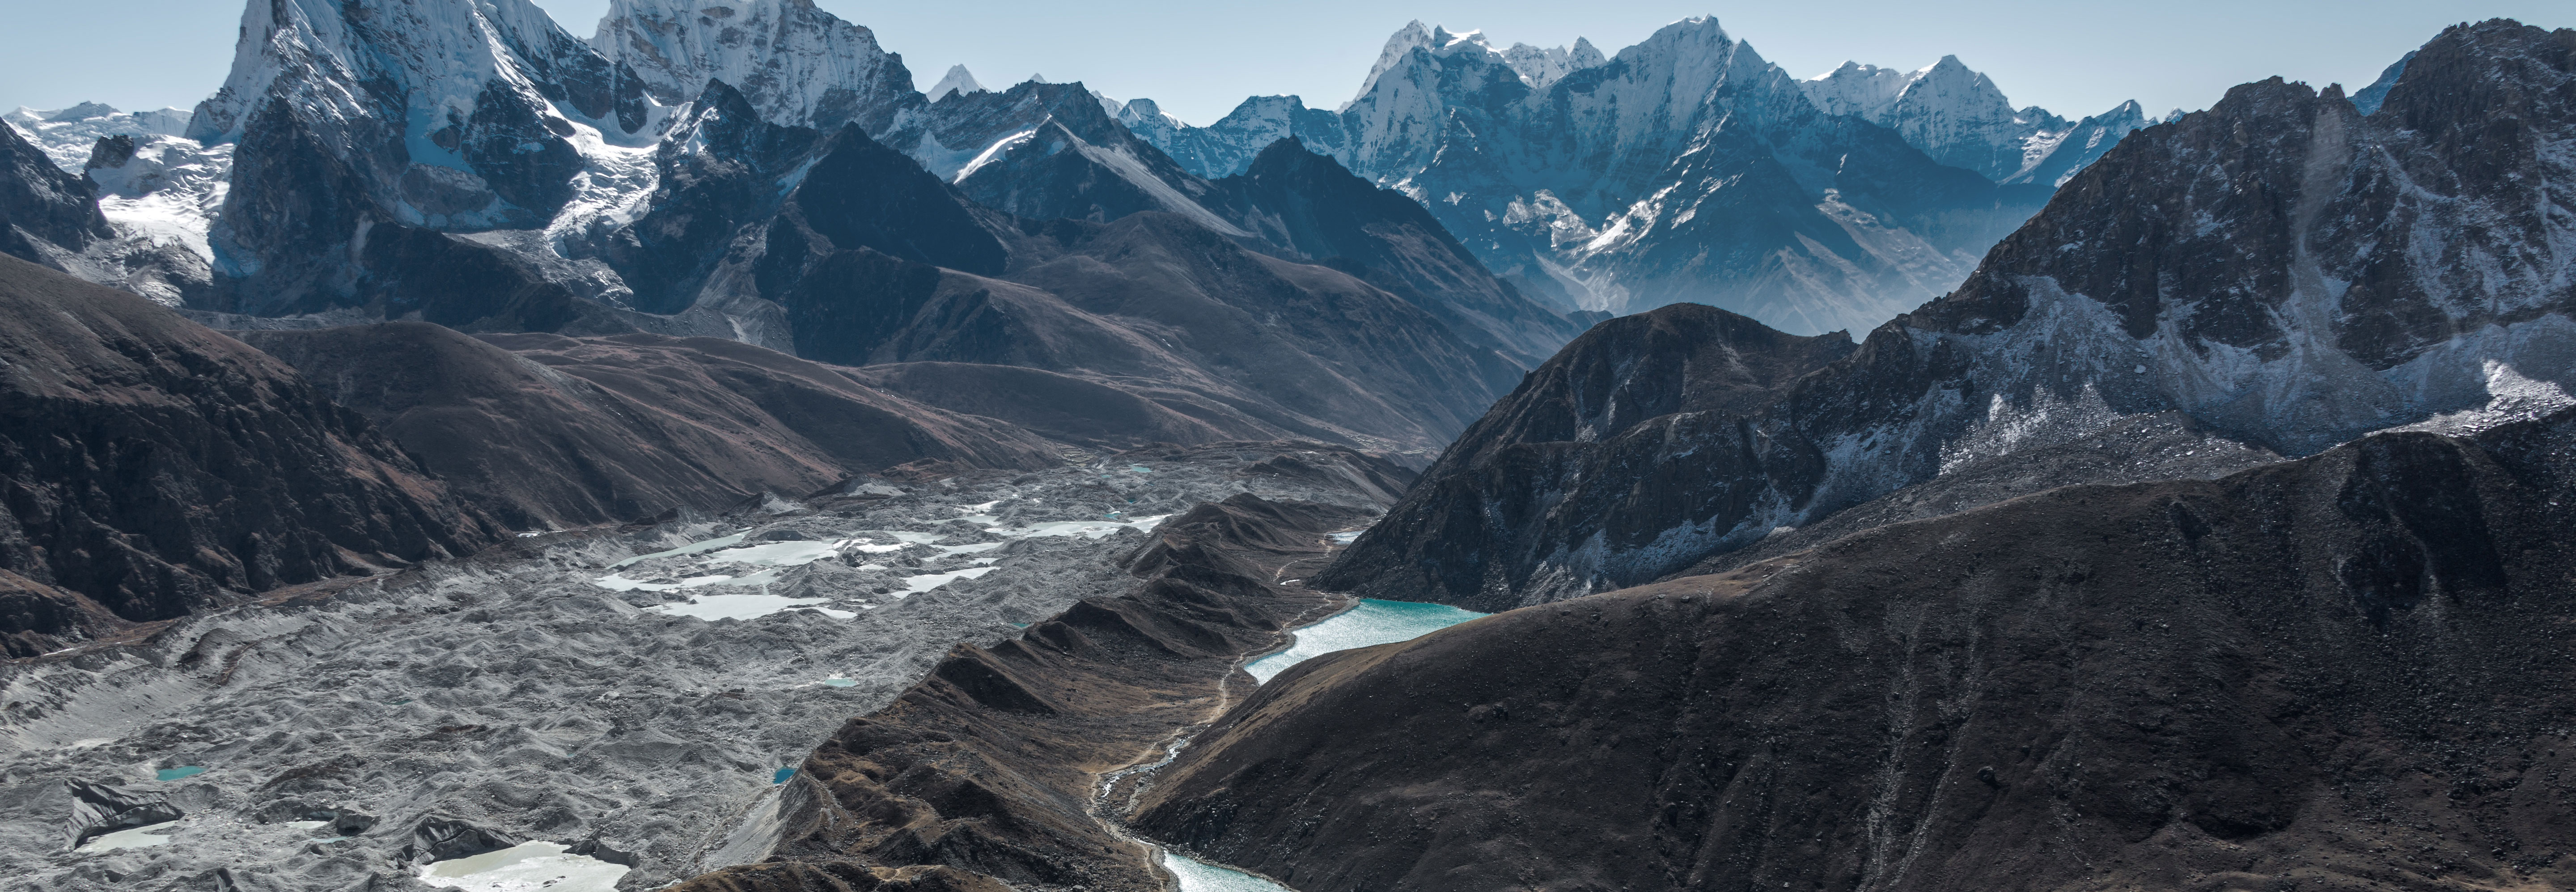 Glacier in the himalaya - climate change